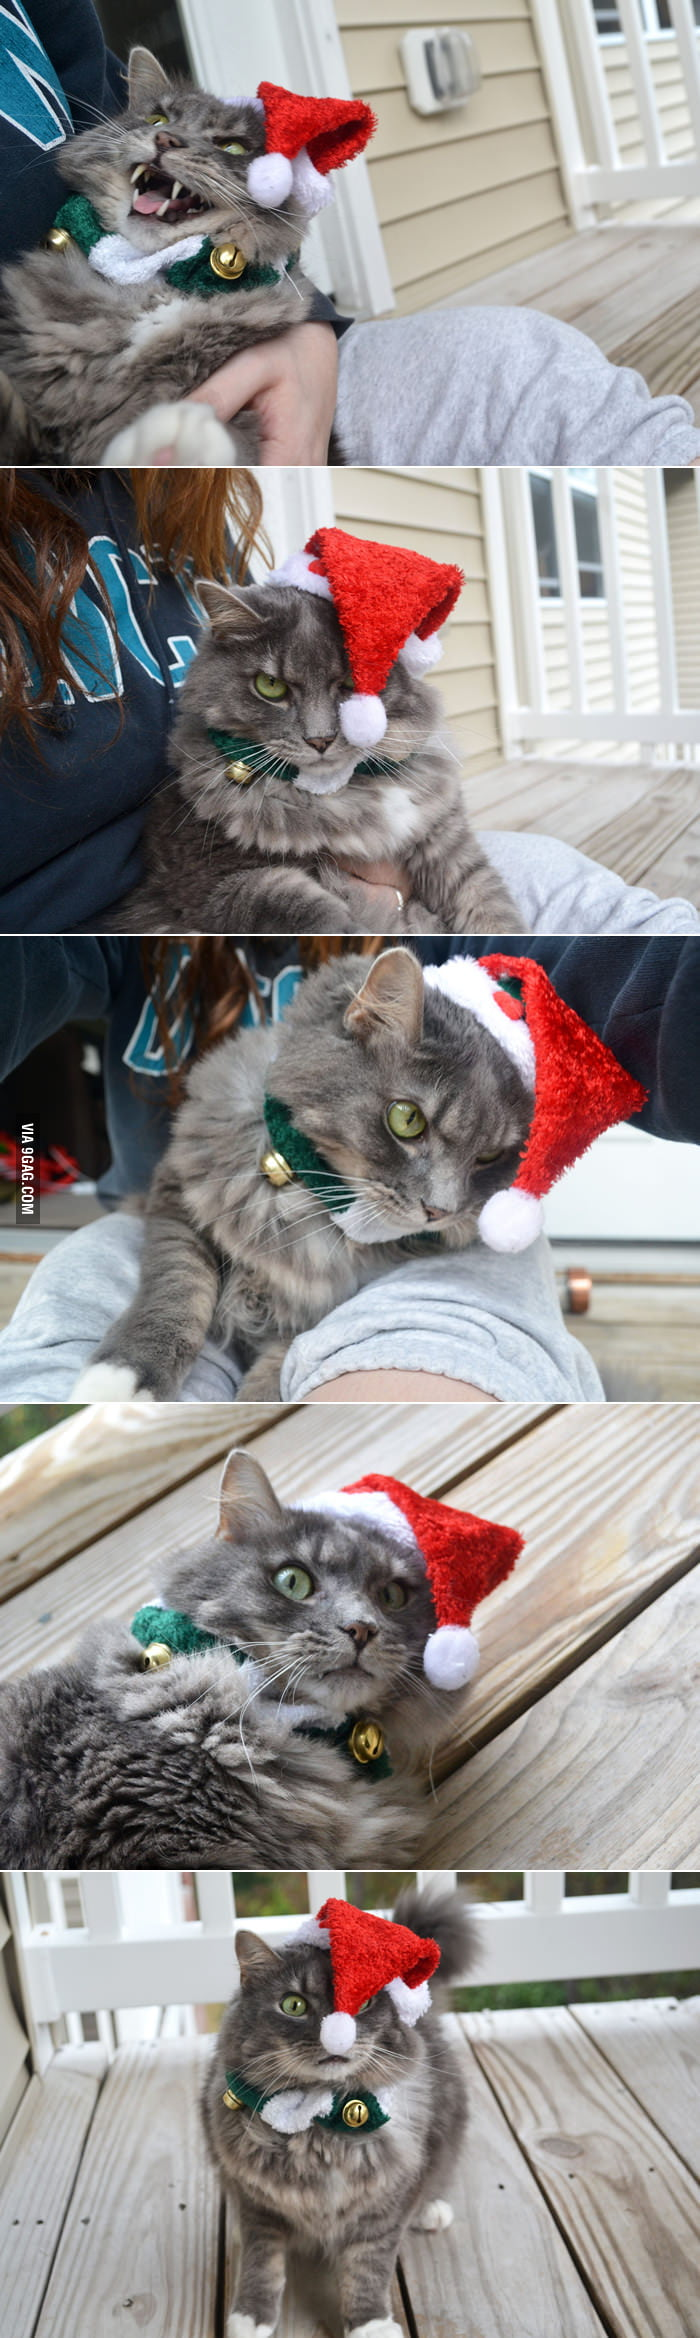 Getting a good Christmas cat photo is not easy.